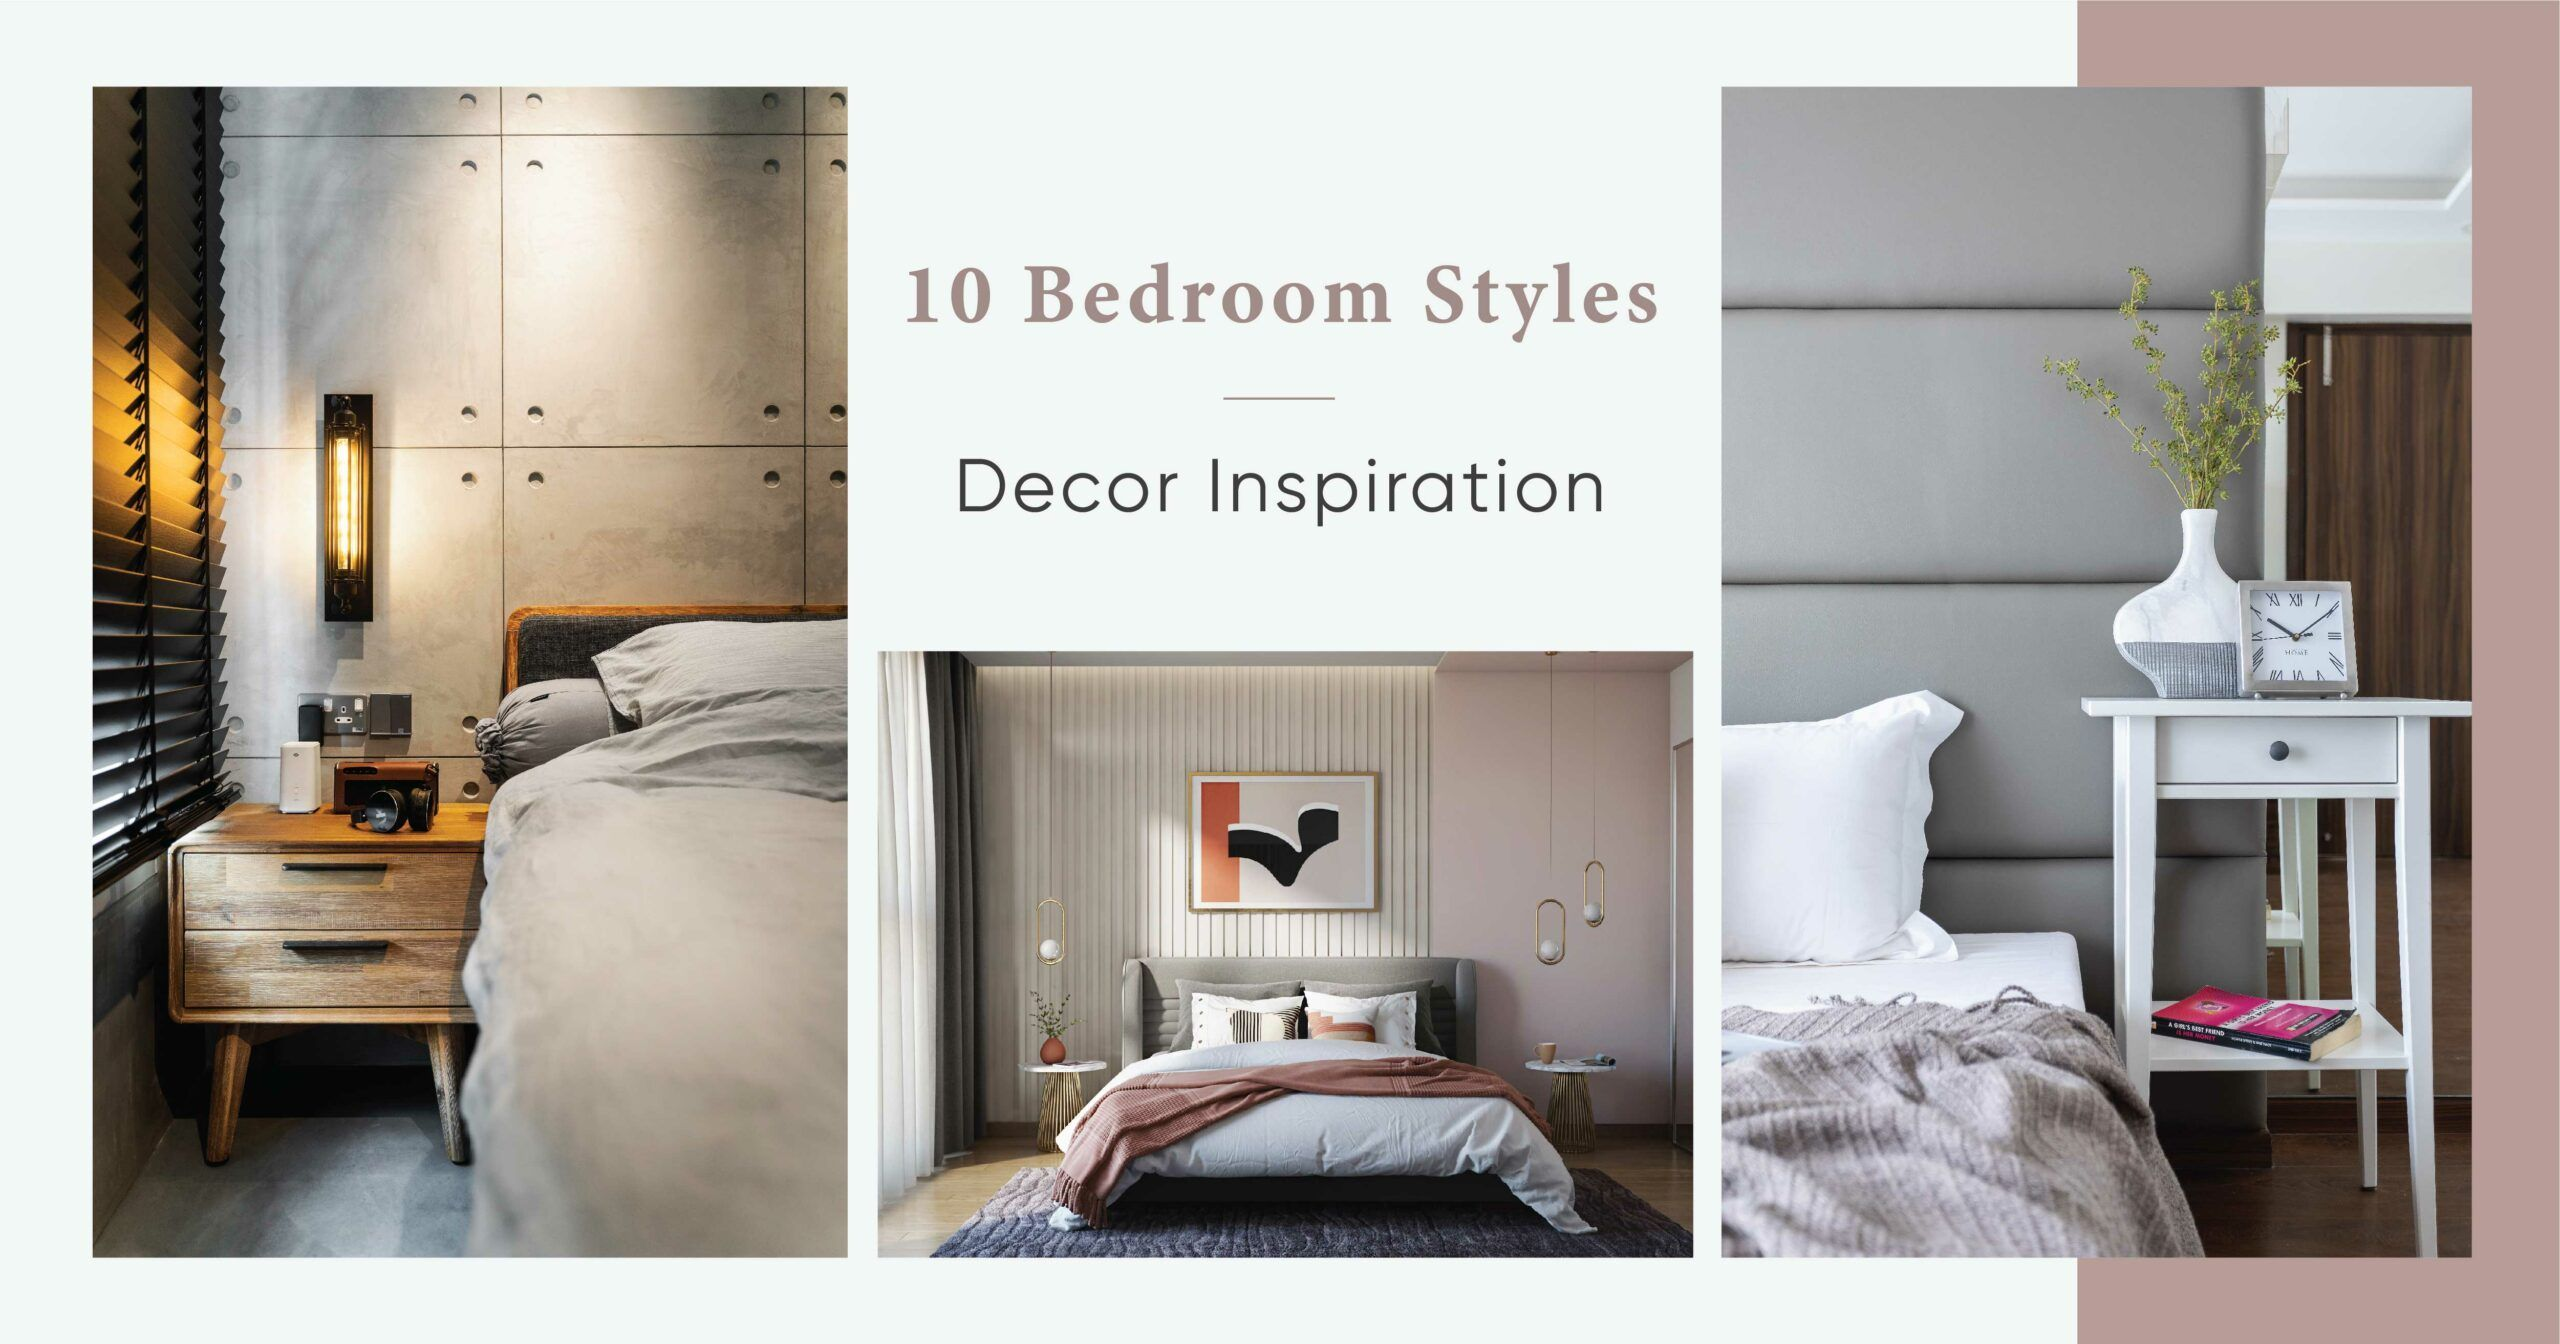 Bedroom Designs You Would Want to Save for Your Renovation